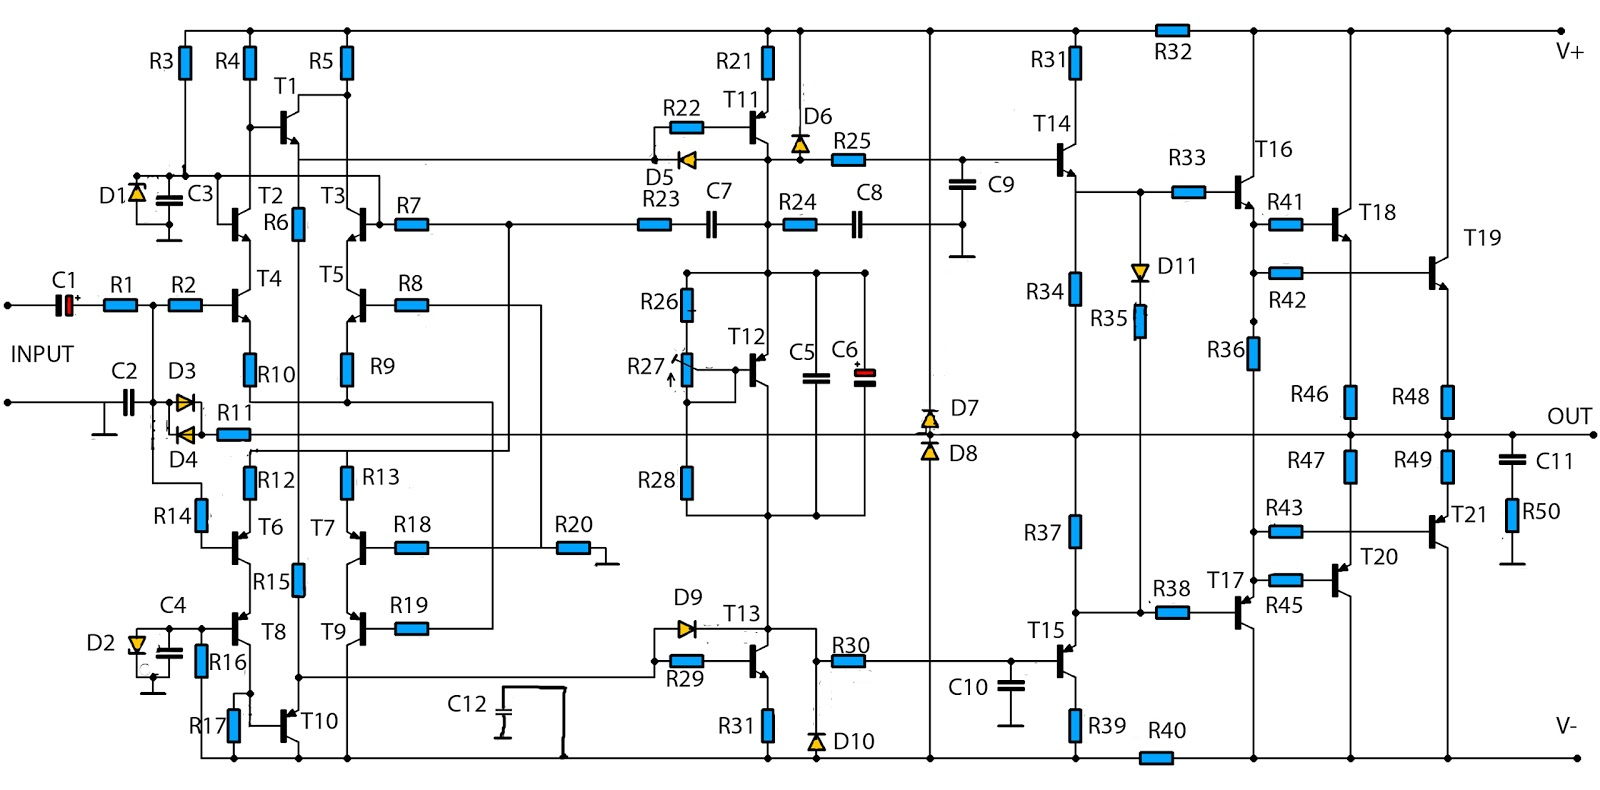 200 watt audio amplifier circuit diagrams wiring library1500w power amplifier circuit and components layout 2800w high power audio amplifier circuit diagram